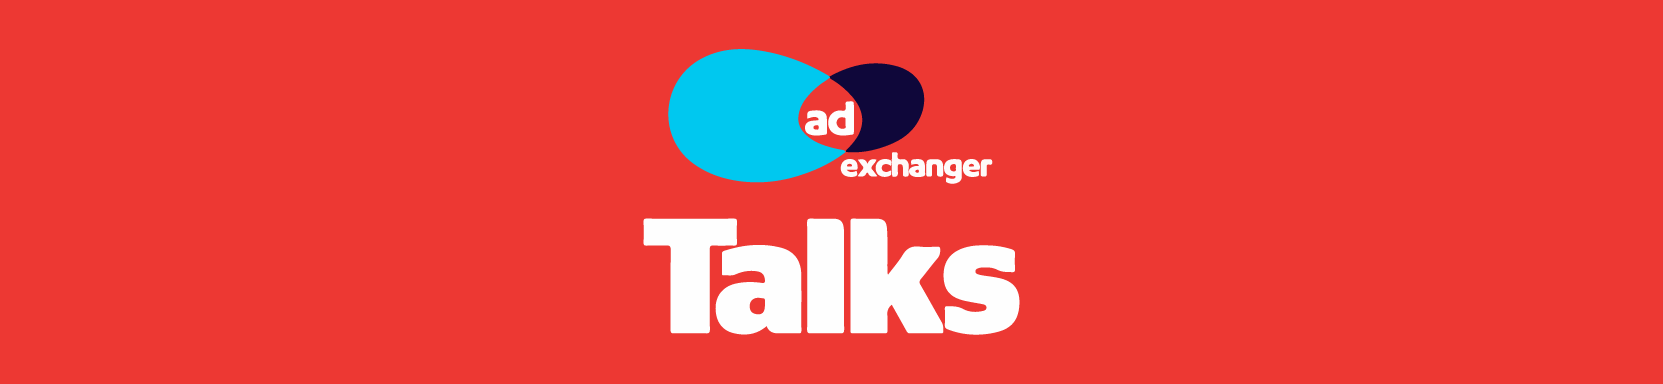 AdExchanger Advertising Marketing Podcast